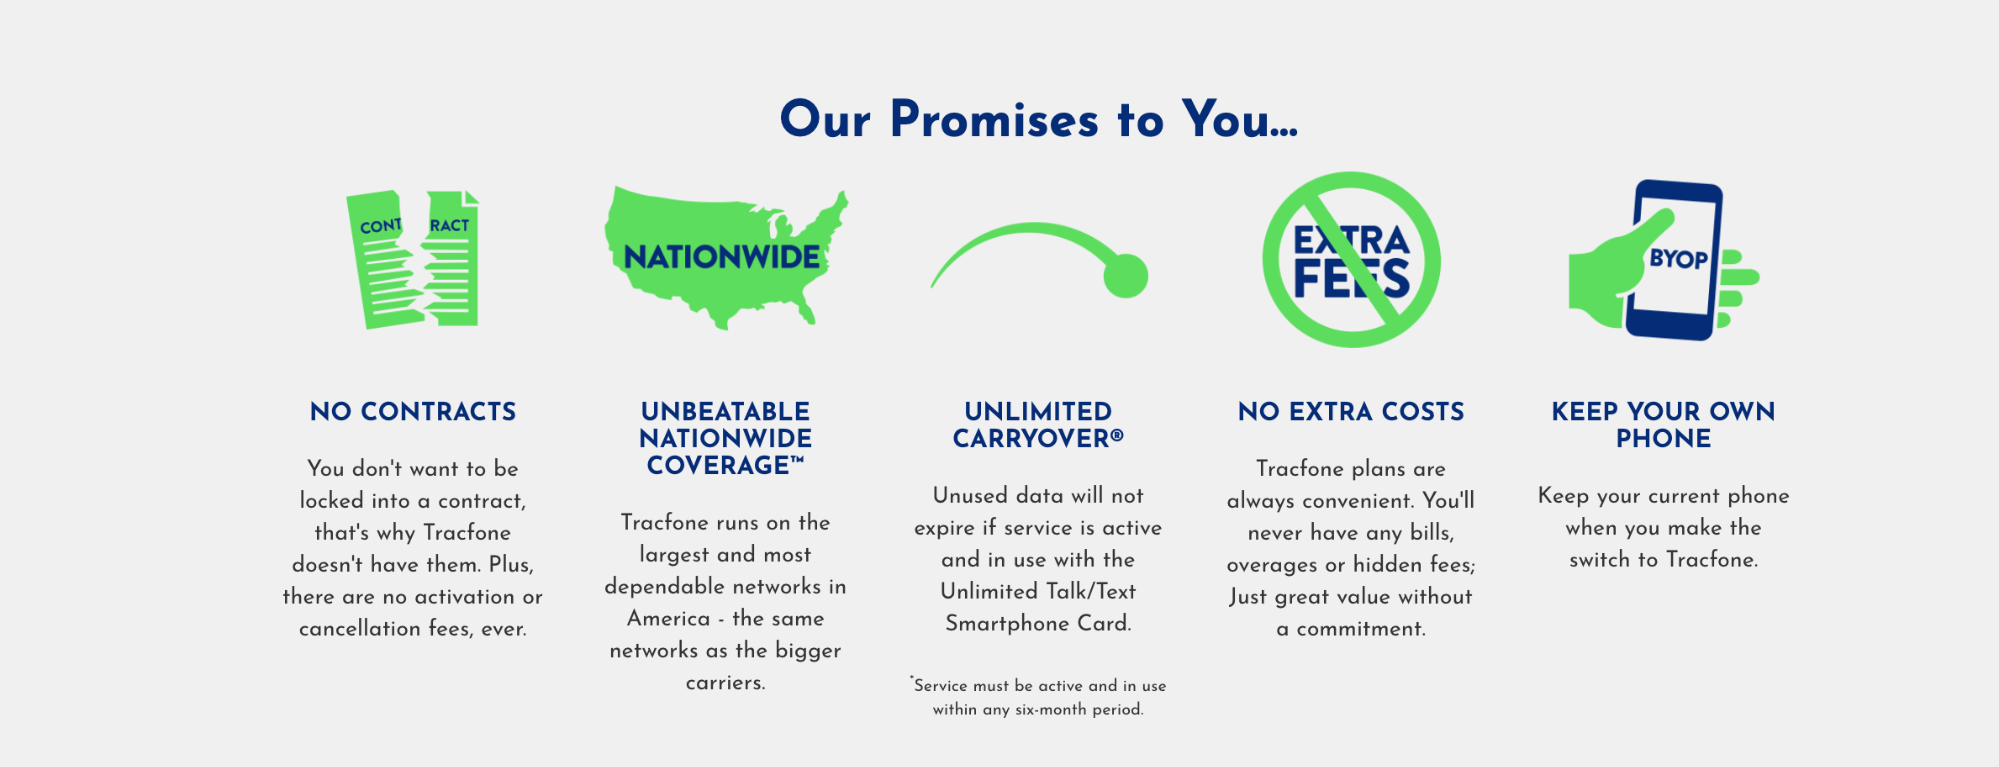 Tracfone Wireless - Tracfone Review, Is It Worth Your Money - no contract - no extra cost - phone